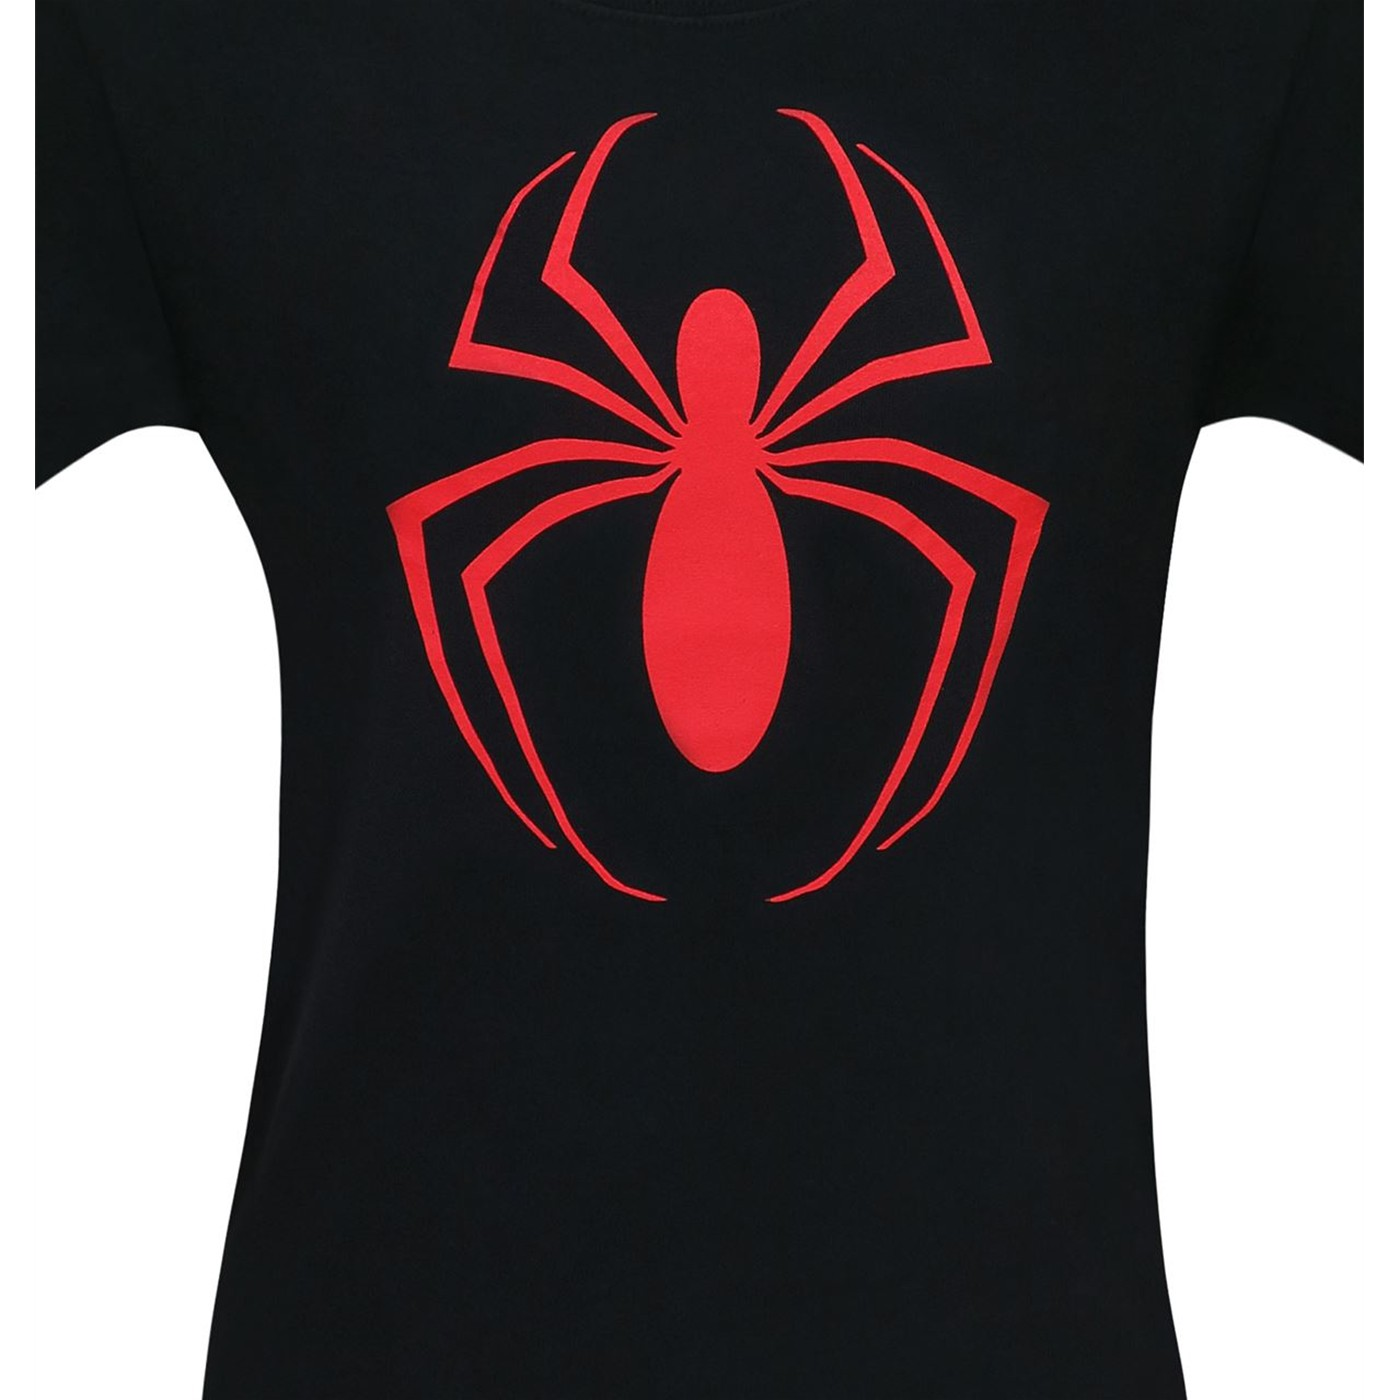 Ultimate Spider-Man Thorax Symbol 30 Single T-Shirt